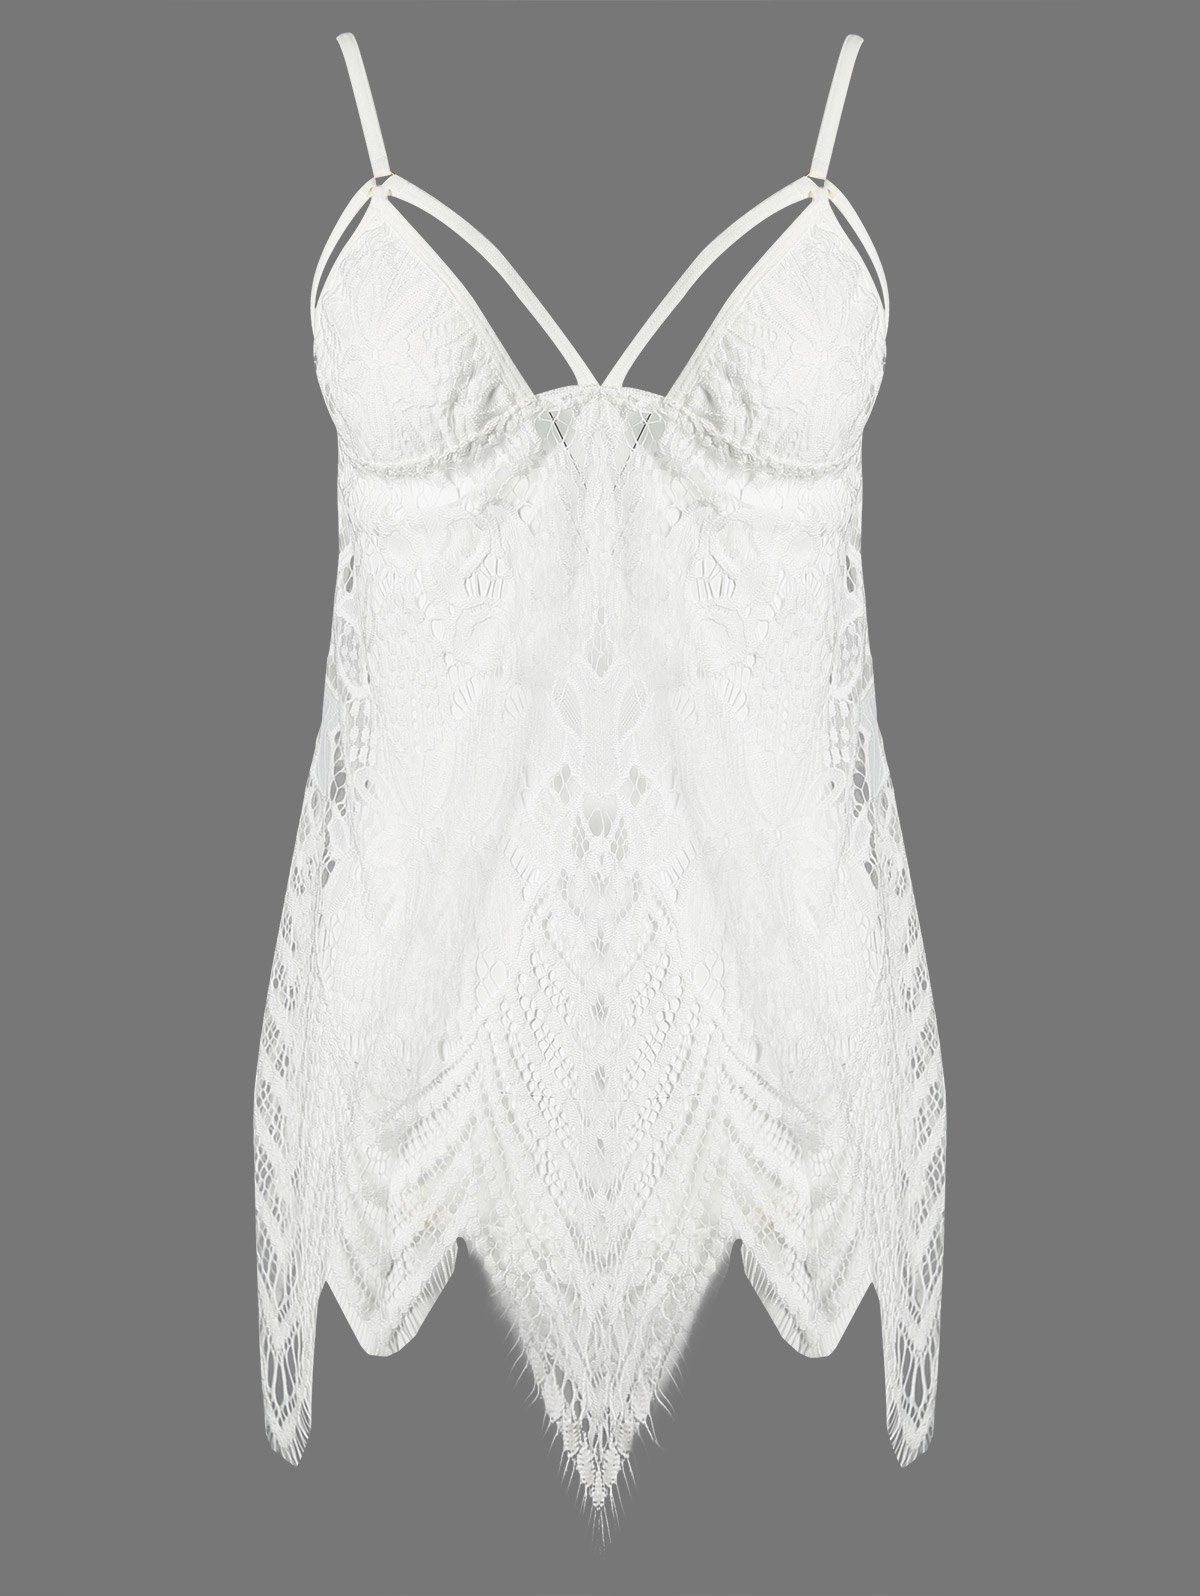 Asymmetric Lace Strappy Babydoll and Briefs